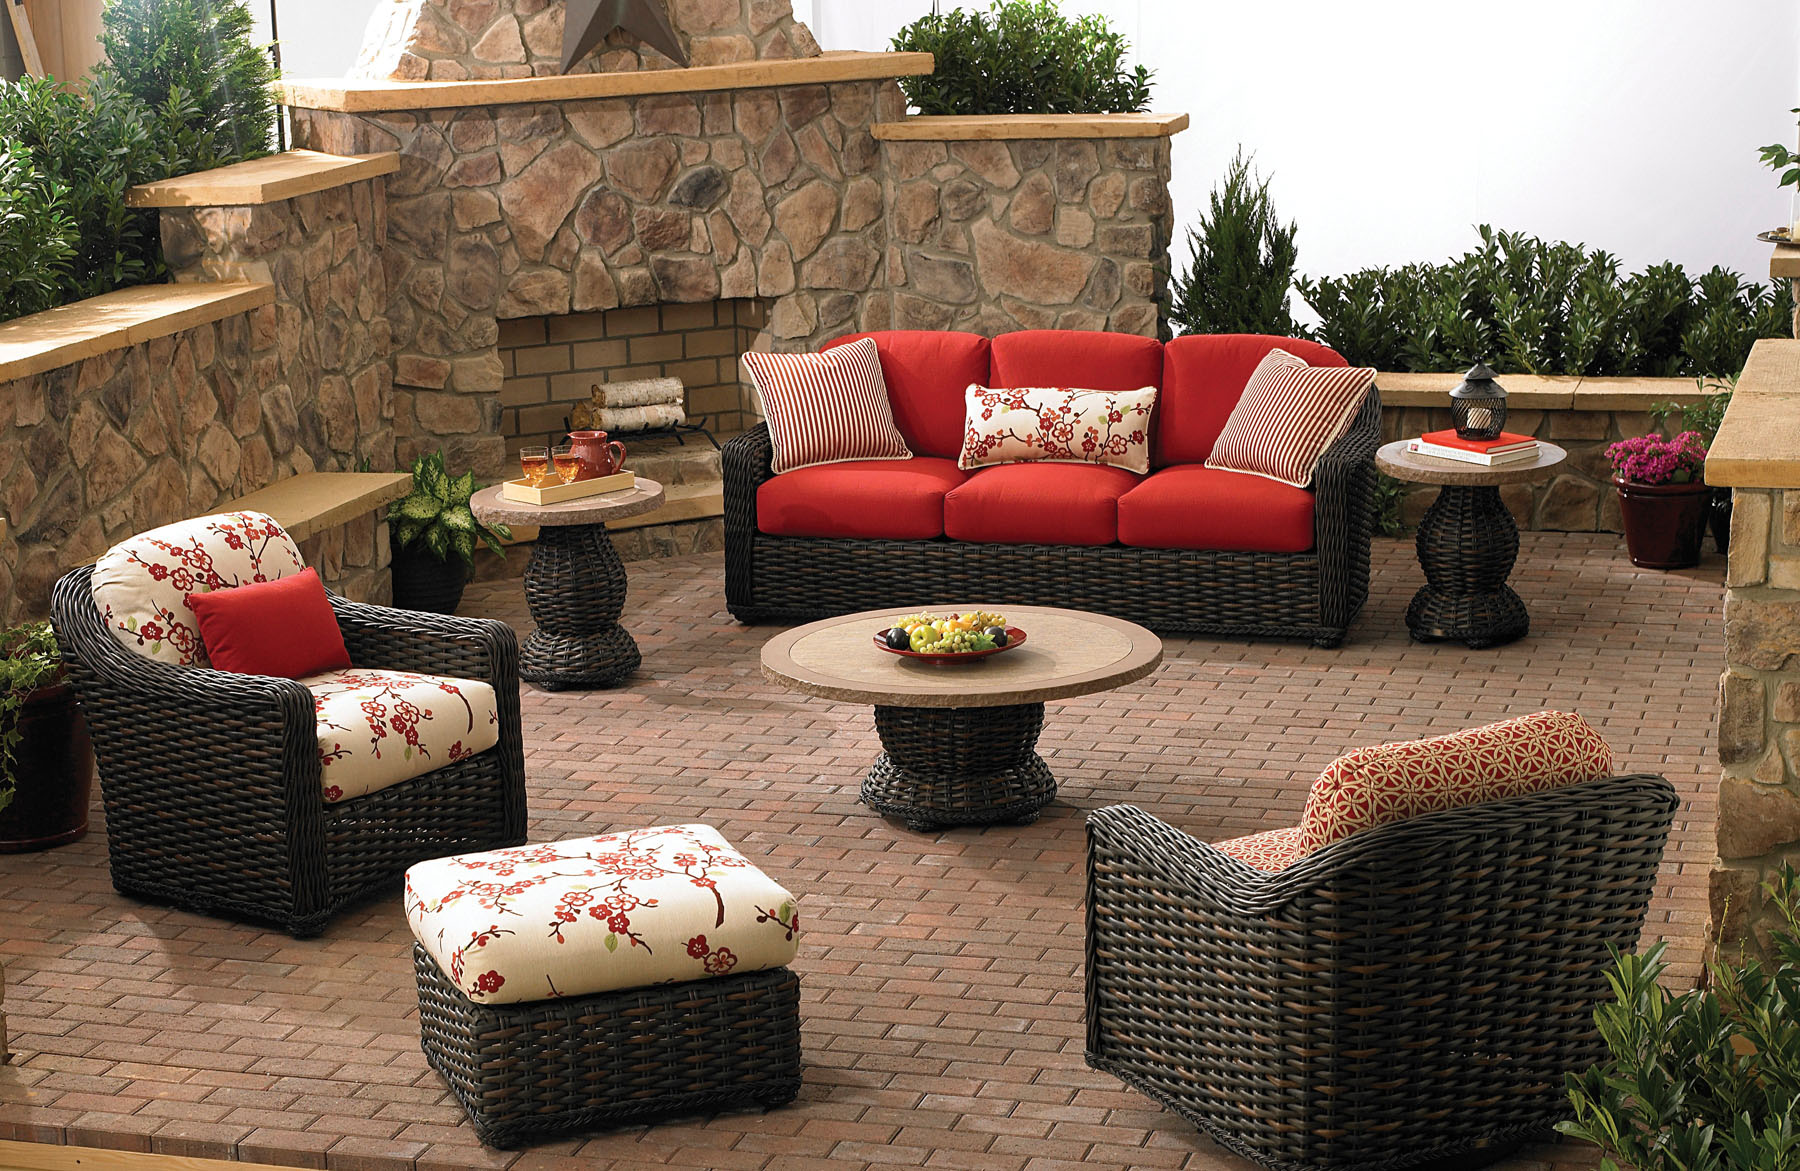 Outdoor Furniture & Patio Furniture Sets In Carefree, AZ